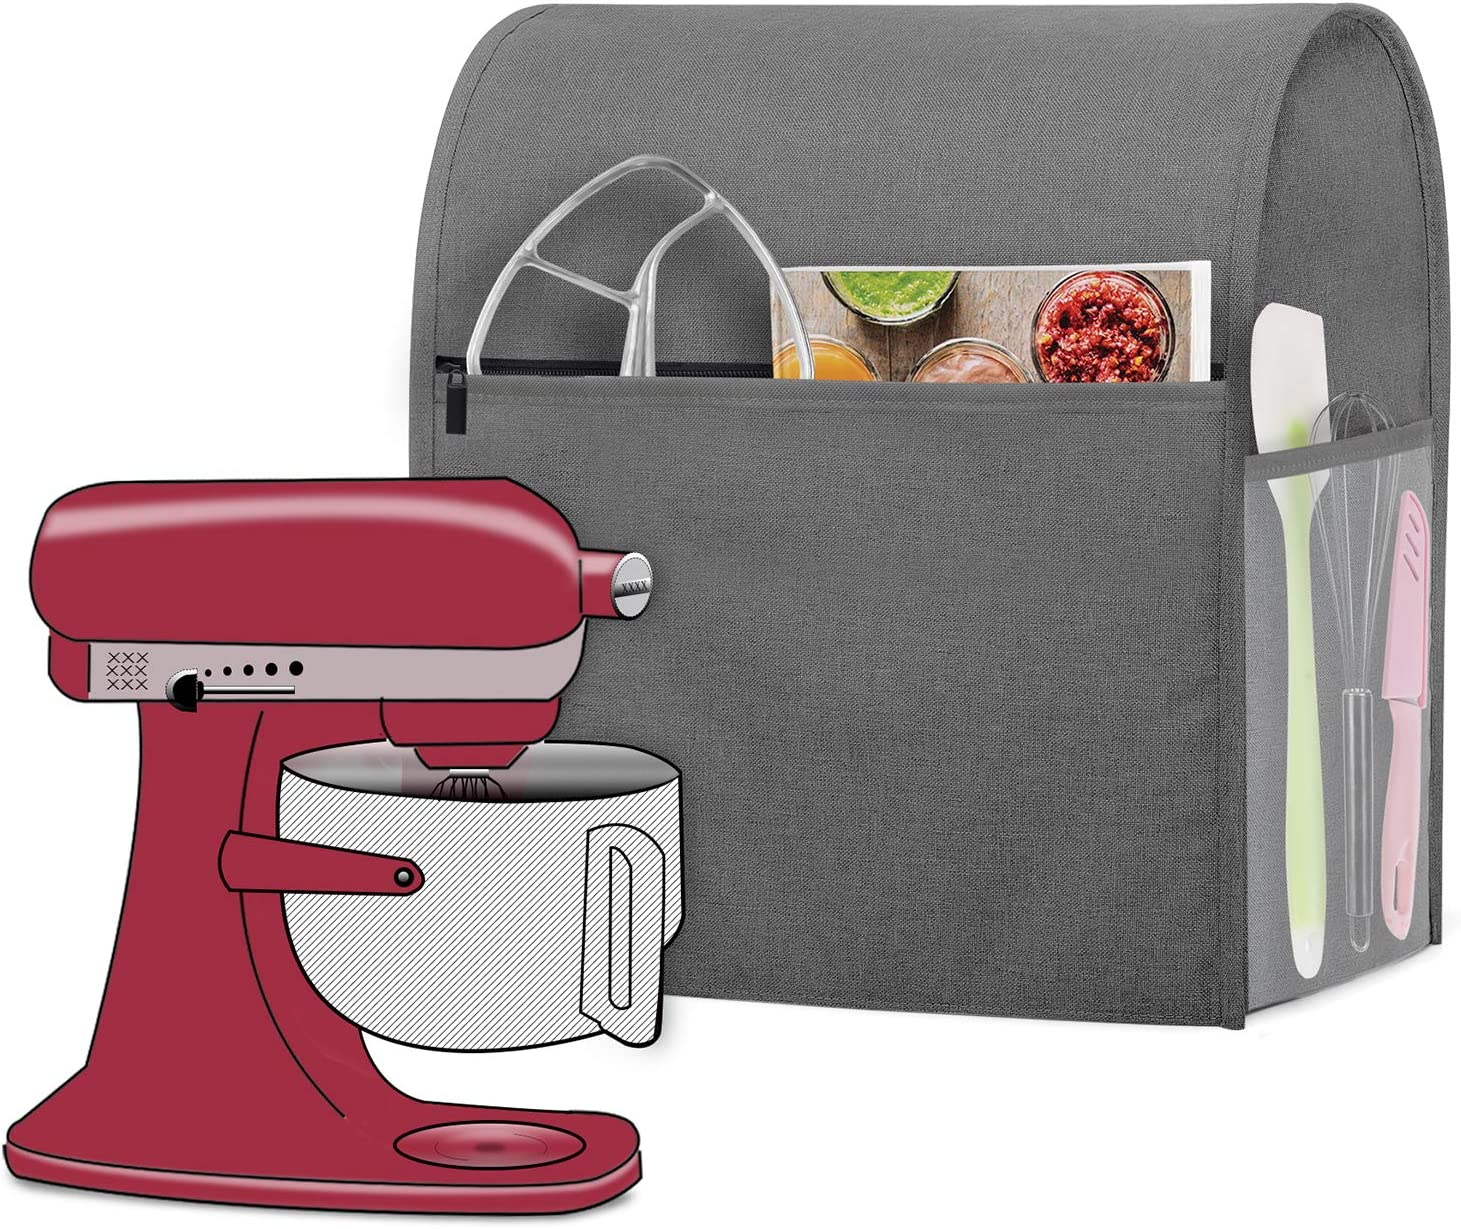 Luxja Dust Cover Compatible with 6-8 Quart KitchenAid Mixers, Dust Cover with Cloudy side Pockets for 6-8 Quart Stand Mixers and Extra Accessories, Gray